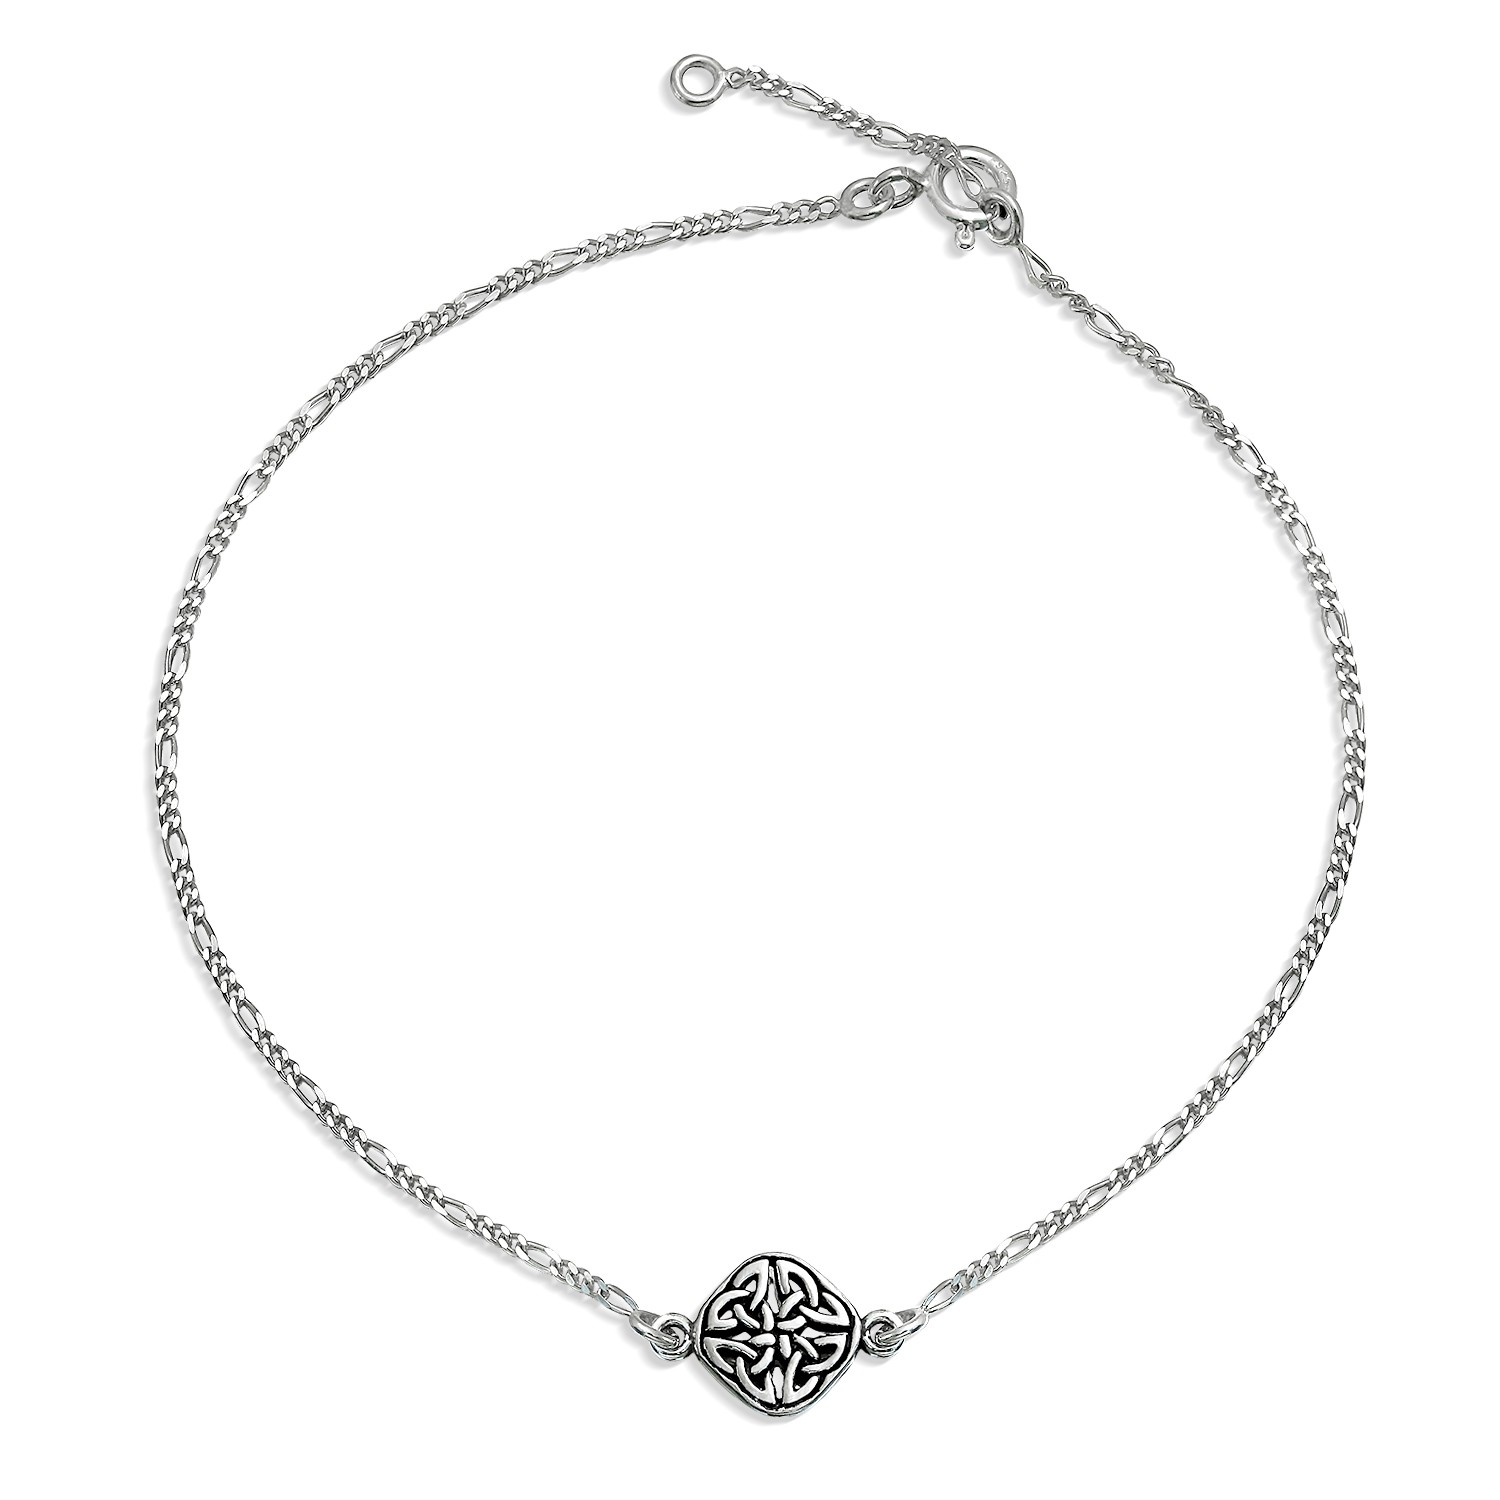 silver anklets bling jewelry 925 sterling silver celtic knot triquetra anklet bracelet hutxmcv